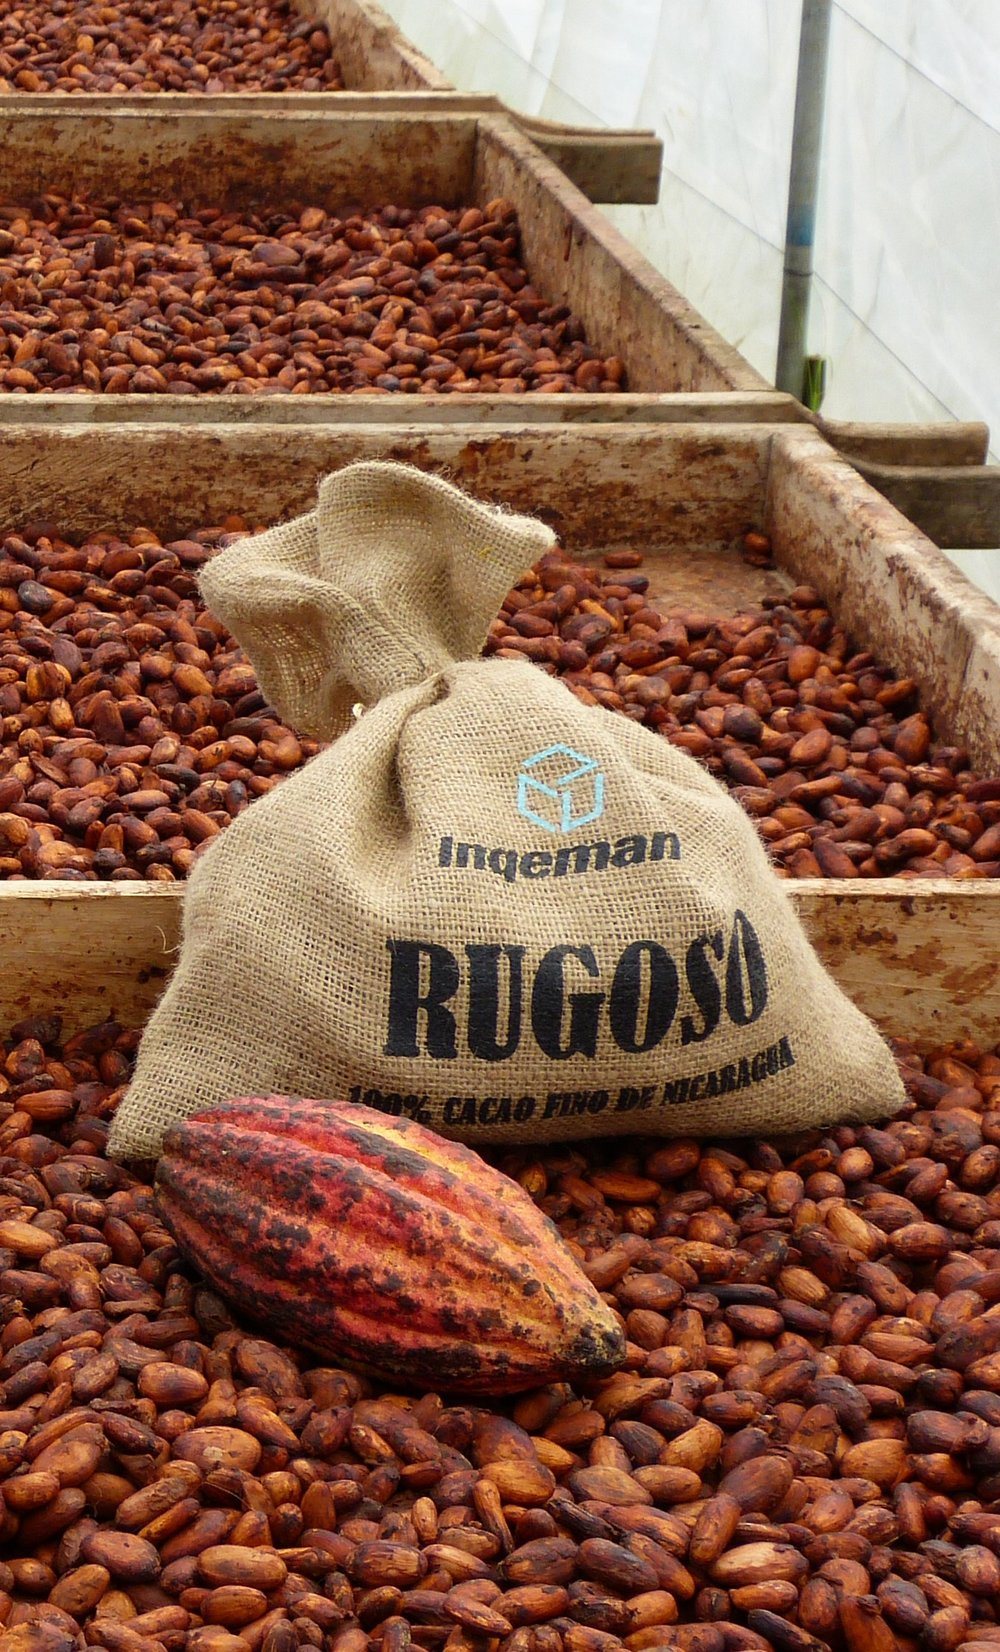 - Rugoso got awarded in 2014 with the regional cocoa of Excellence Award - best of Nicarauga.In 2015 it won the international Cocoa of Excellence Award.ZOTO bought the award winning lot and makes a unique chocolate from it with the help of Chocolatoa.Winning Bronze at the European Chocolate Awards, gives us an entry ticket to compete at the World Chocolate Awards.